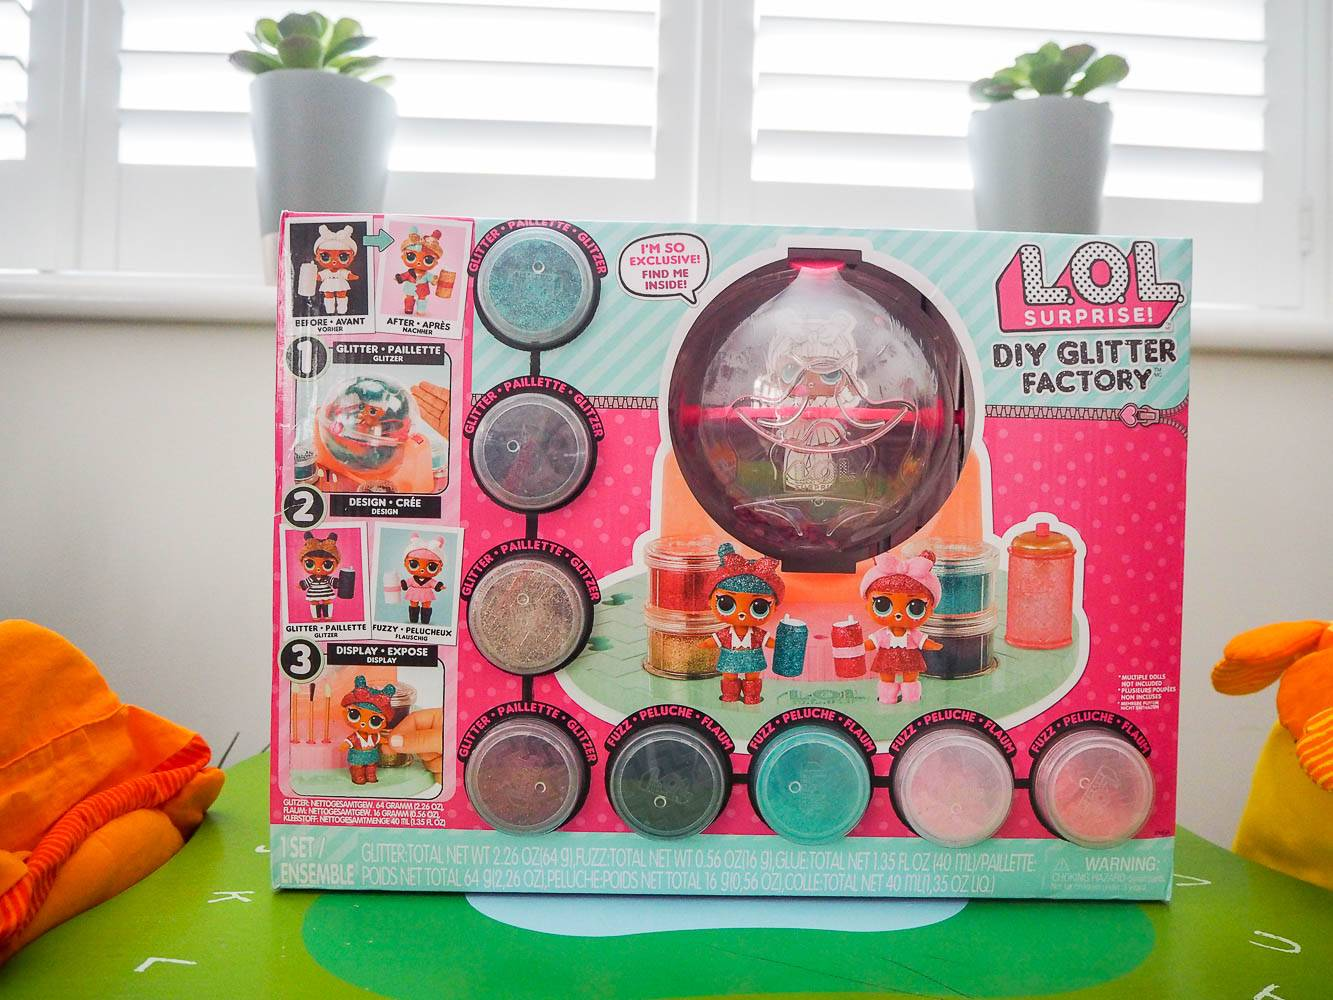 Introducing Lol Surprise Diy Glitter Factory Dear Bear And Beany